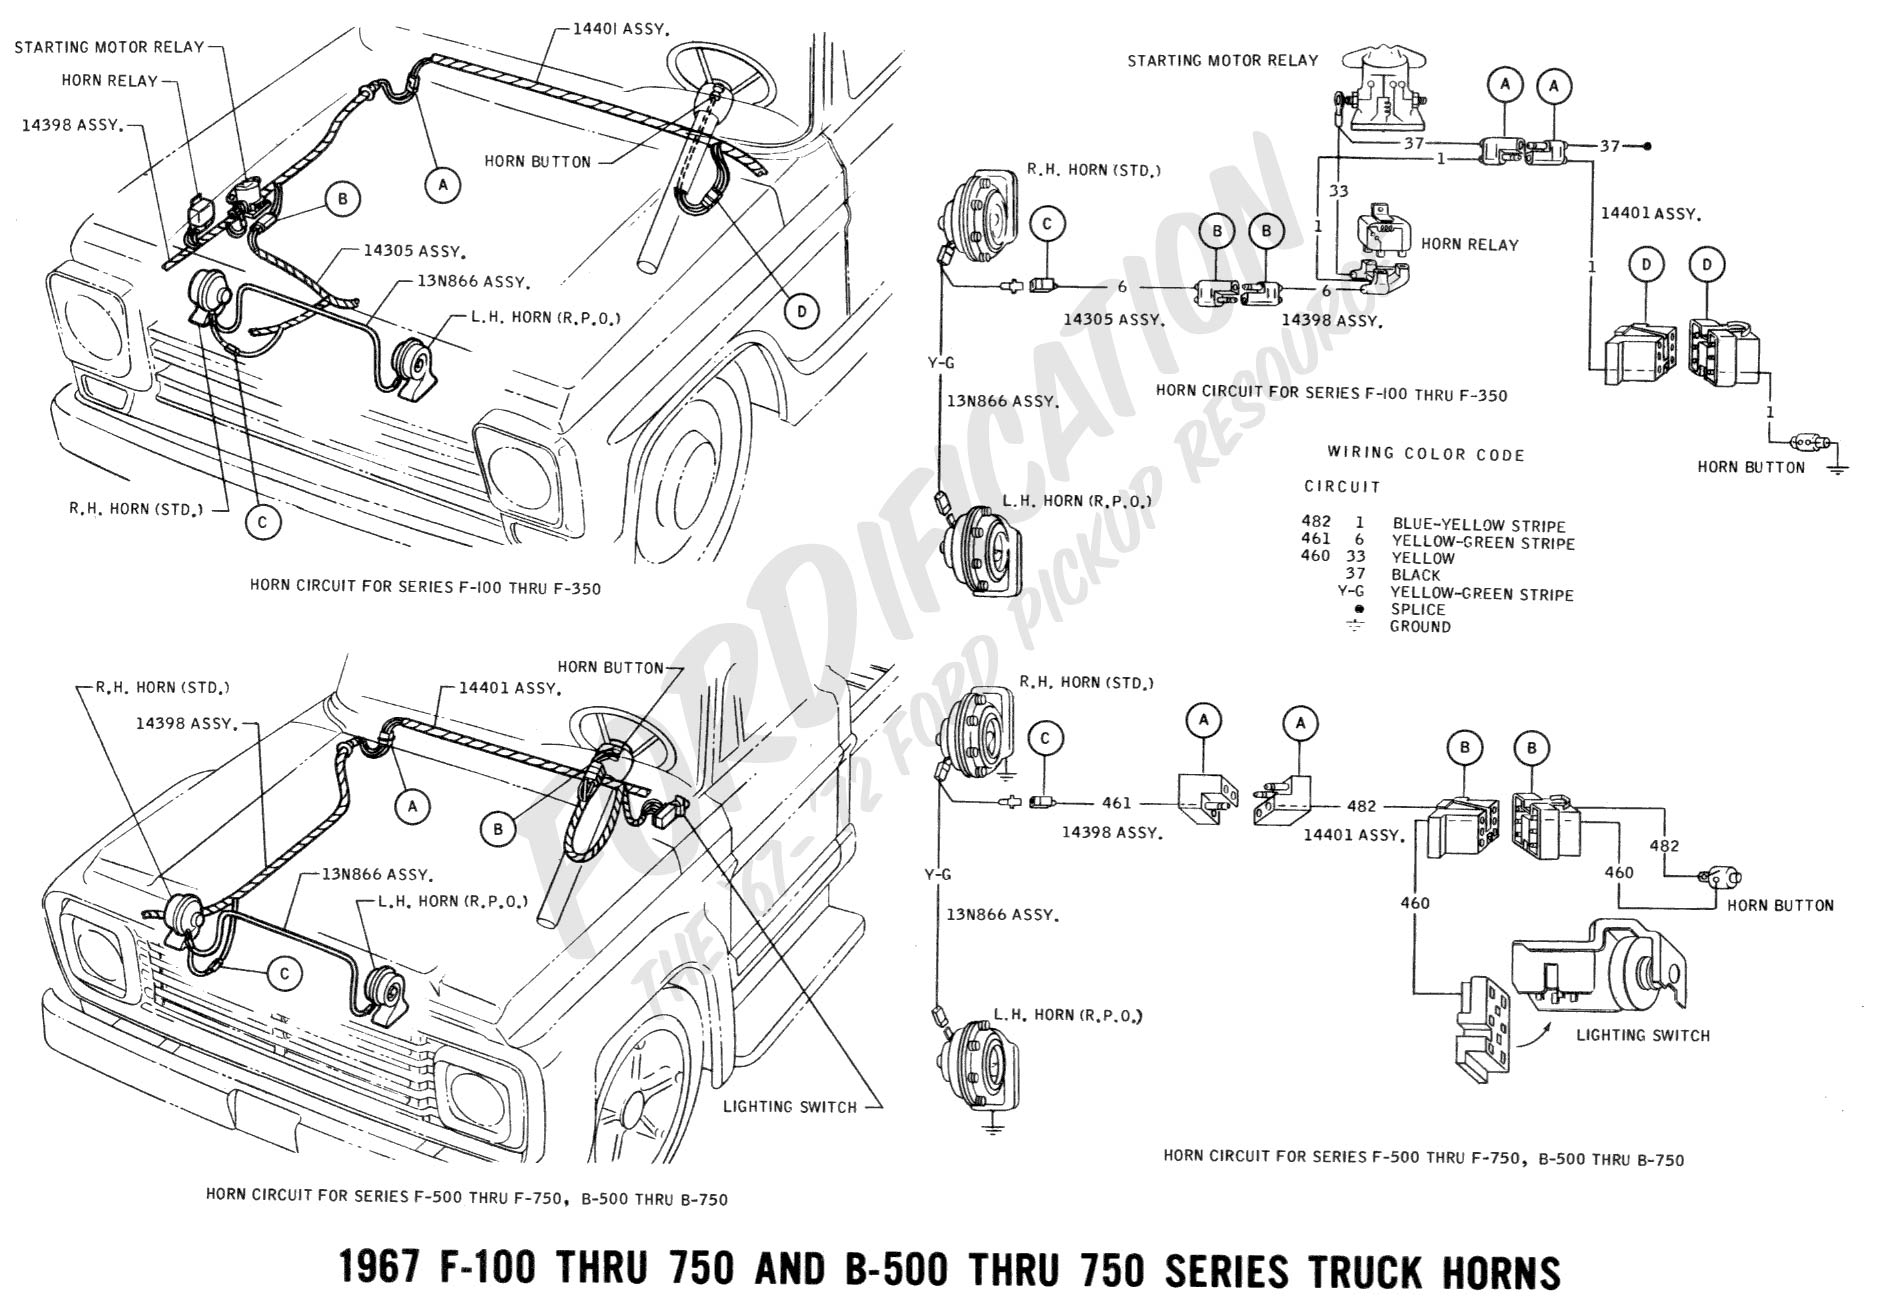 Schematics h on 1967 mustang ignition switch wiring diagram